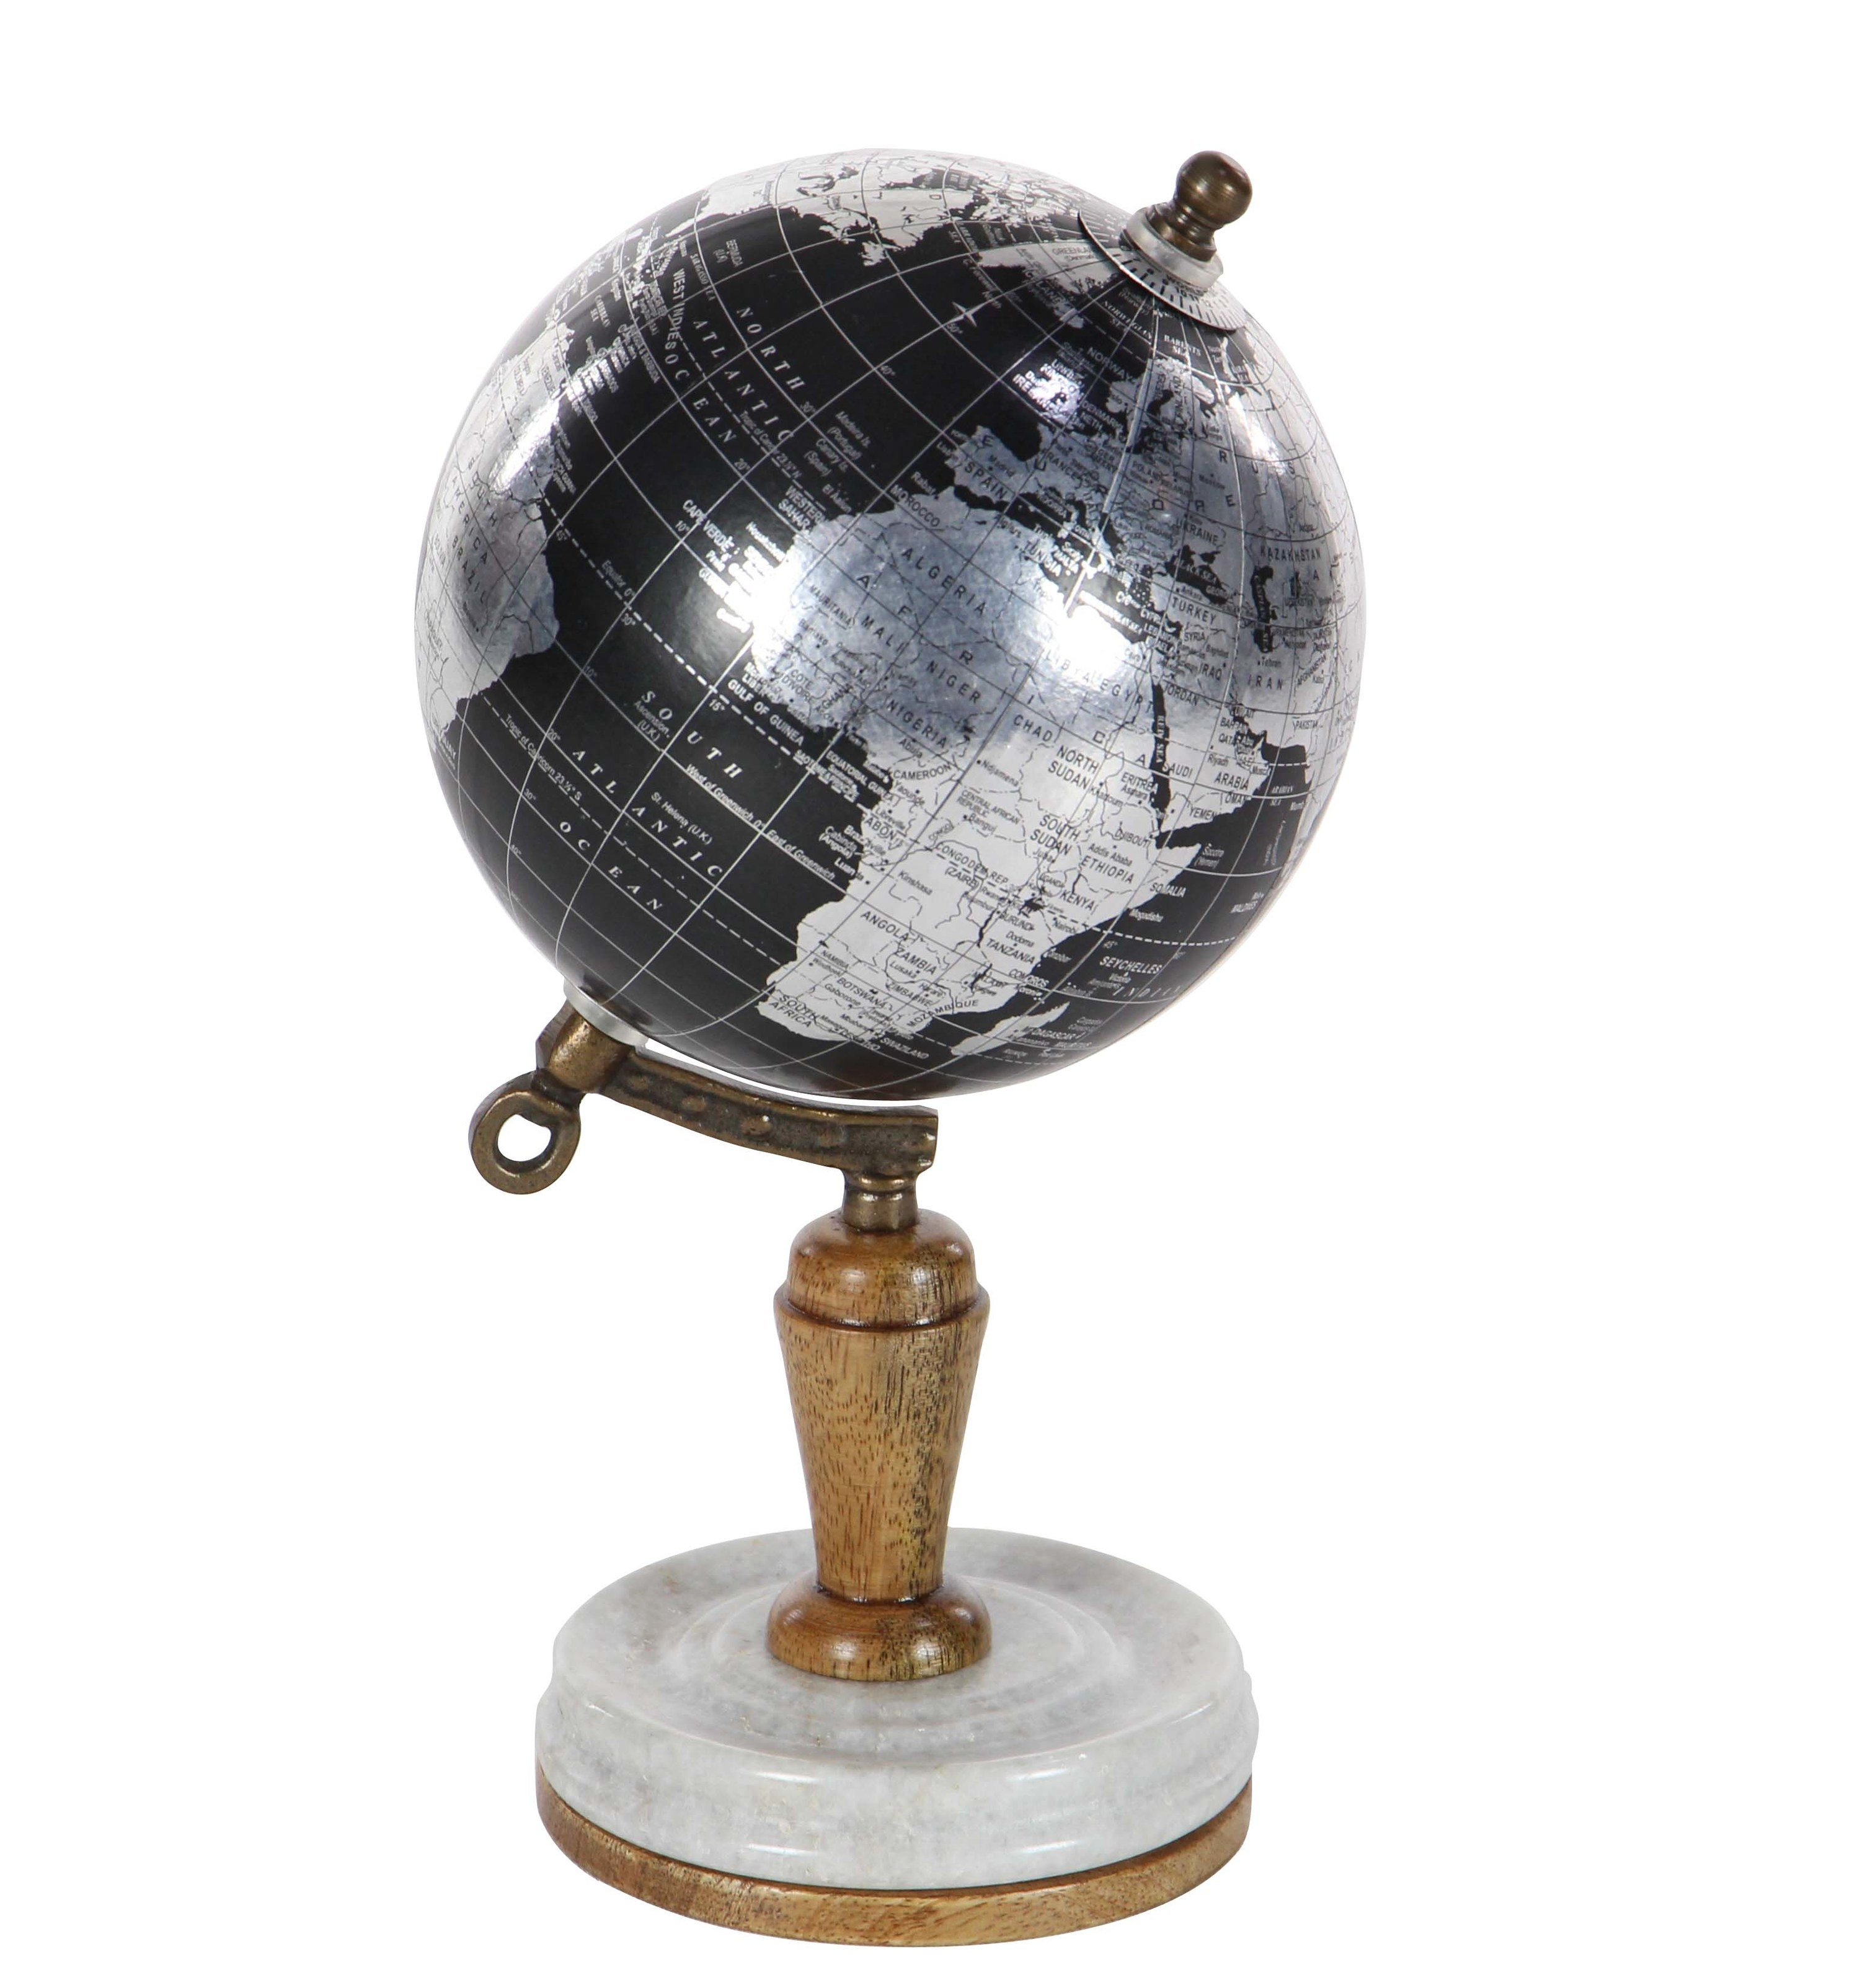 The black and silver globe